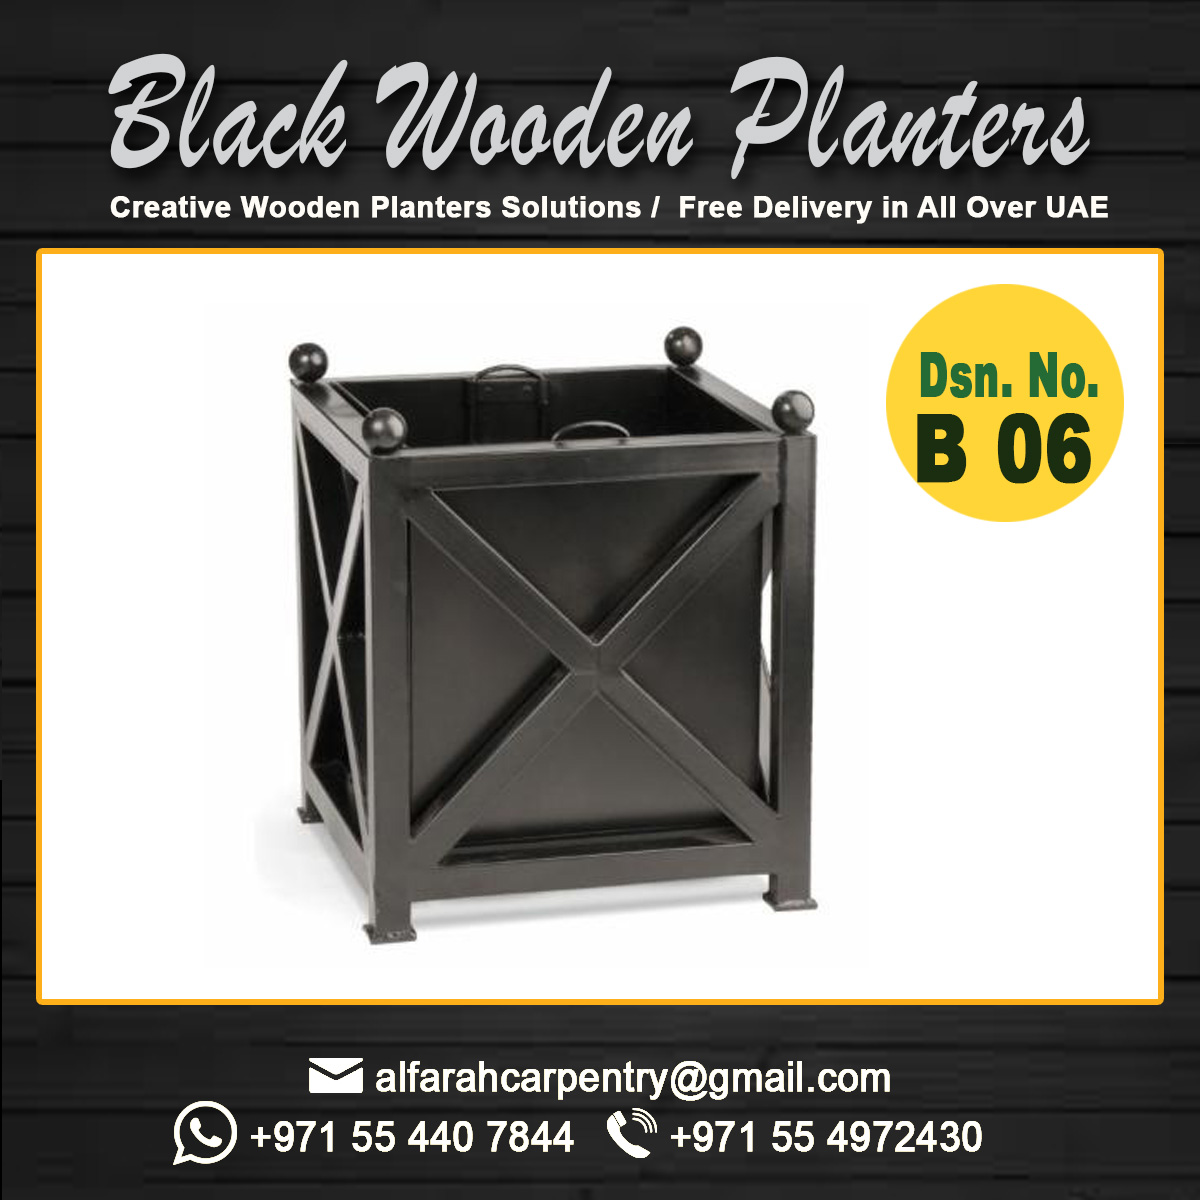 Wooden Planters Manufacturer In uae on wooden plates, wooden garden, wooden rakes, wooden bells, wooden chairs, wooden troughs, wooden pedestals, wooden greenhouses, wooden arbors, wooden bollards, wooden bird feeders, wooden pavers, wooden toys, wooden bird houses, wooden trellis, wooden bookends, wooden home, wooden decking, wooden plows, wooden benches,